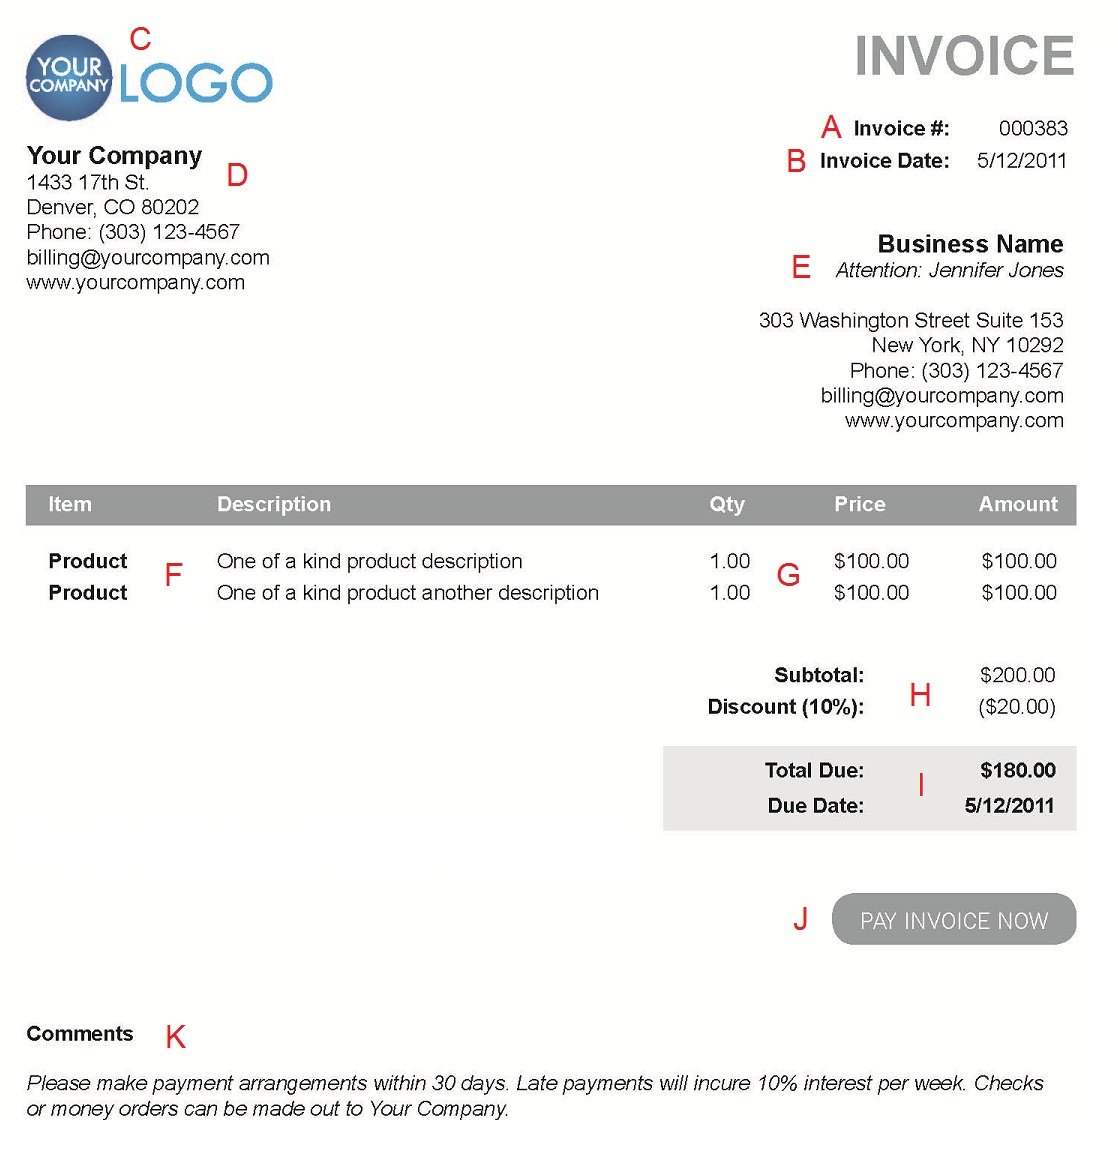 Centralasianshepherdus  Ravishing The  Different Sections Of An Electronic Payment Invoice With Glamorous A  With Amazing Dealer Invoice Price Definition Also Copy Of Blank Invoice In Addition Ford F Invoice And Project Management Invoicing As Well As What Is The Invoice Additionally Honda Civic Invoice From Paysimplecom With Centralasianshepherdus  Glamorous The  Different Sections Of An Electronic Payment Invoice With Amazing A  And Ravishing Dealer Invoice Price Definition Also Copy Of Blank Invoice In Addition Ford F Invoice From Paysimplecom